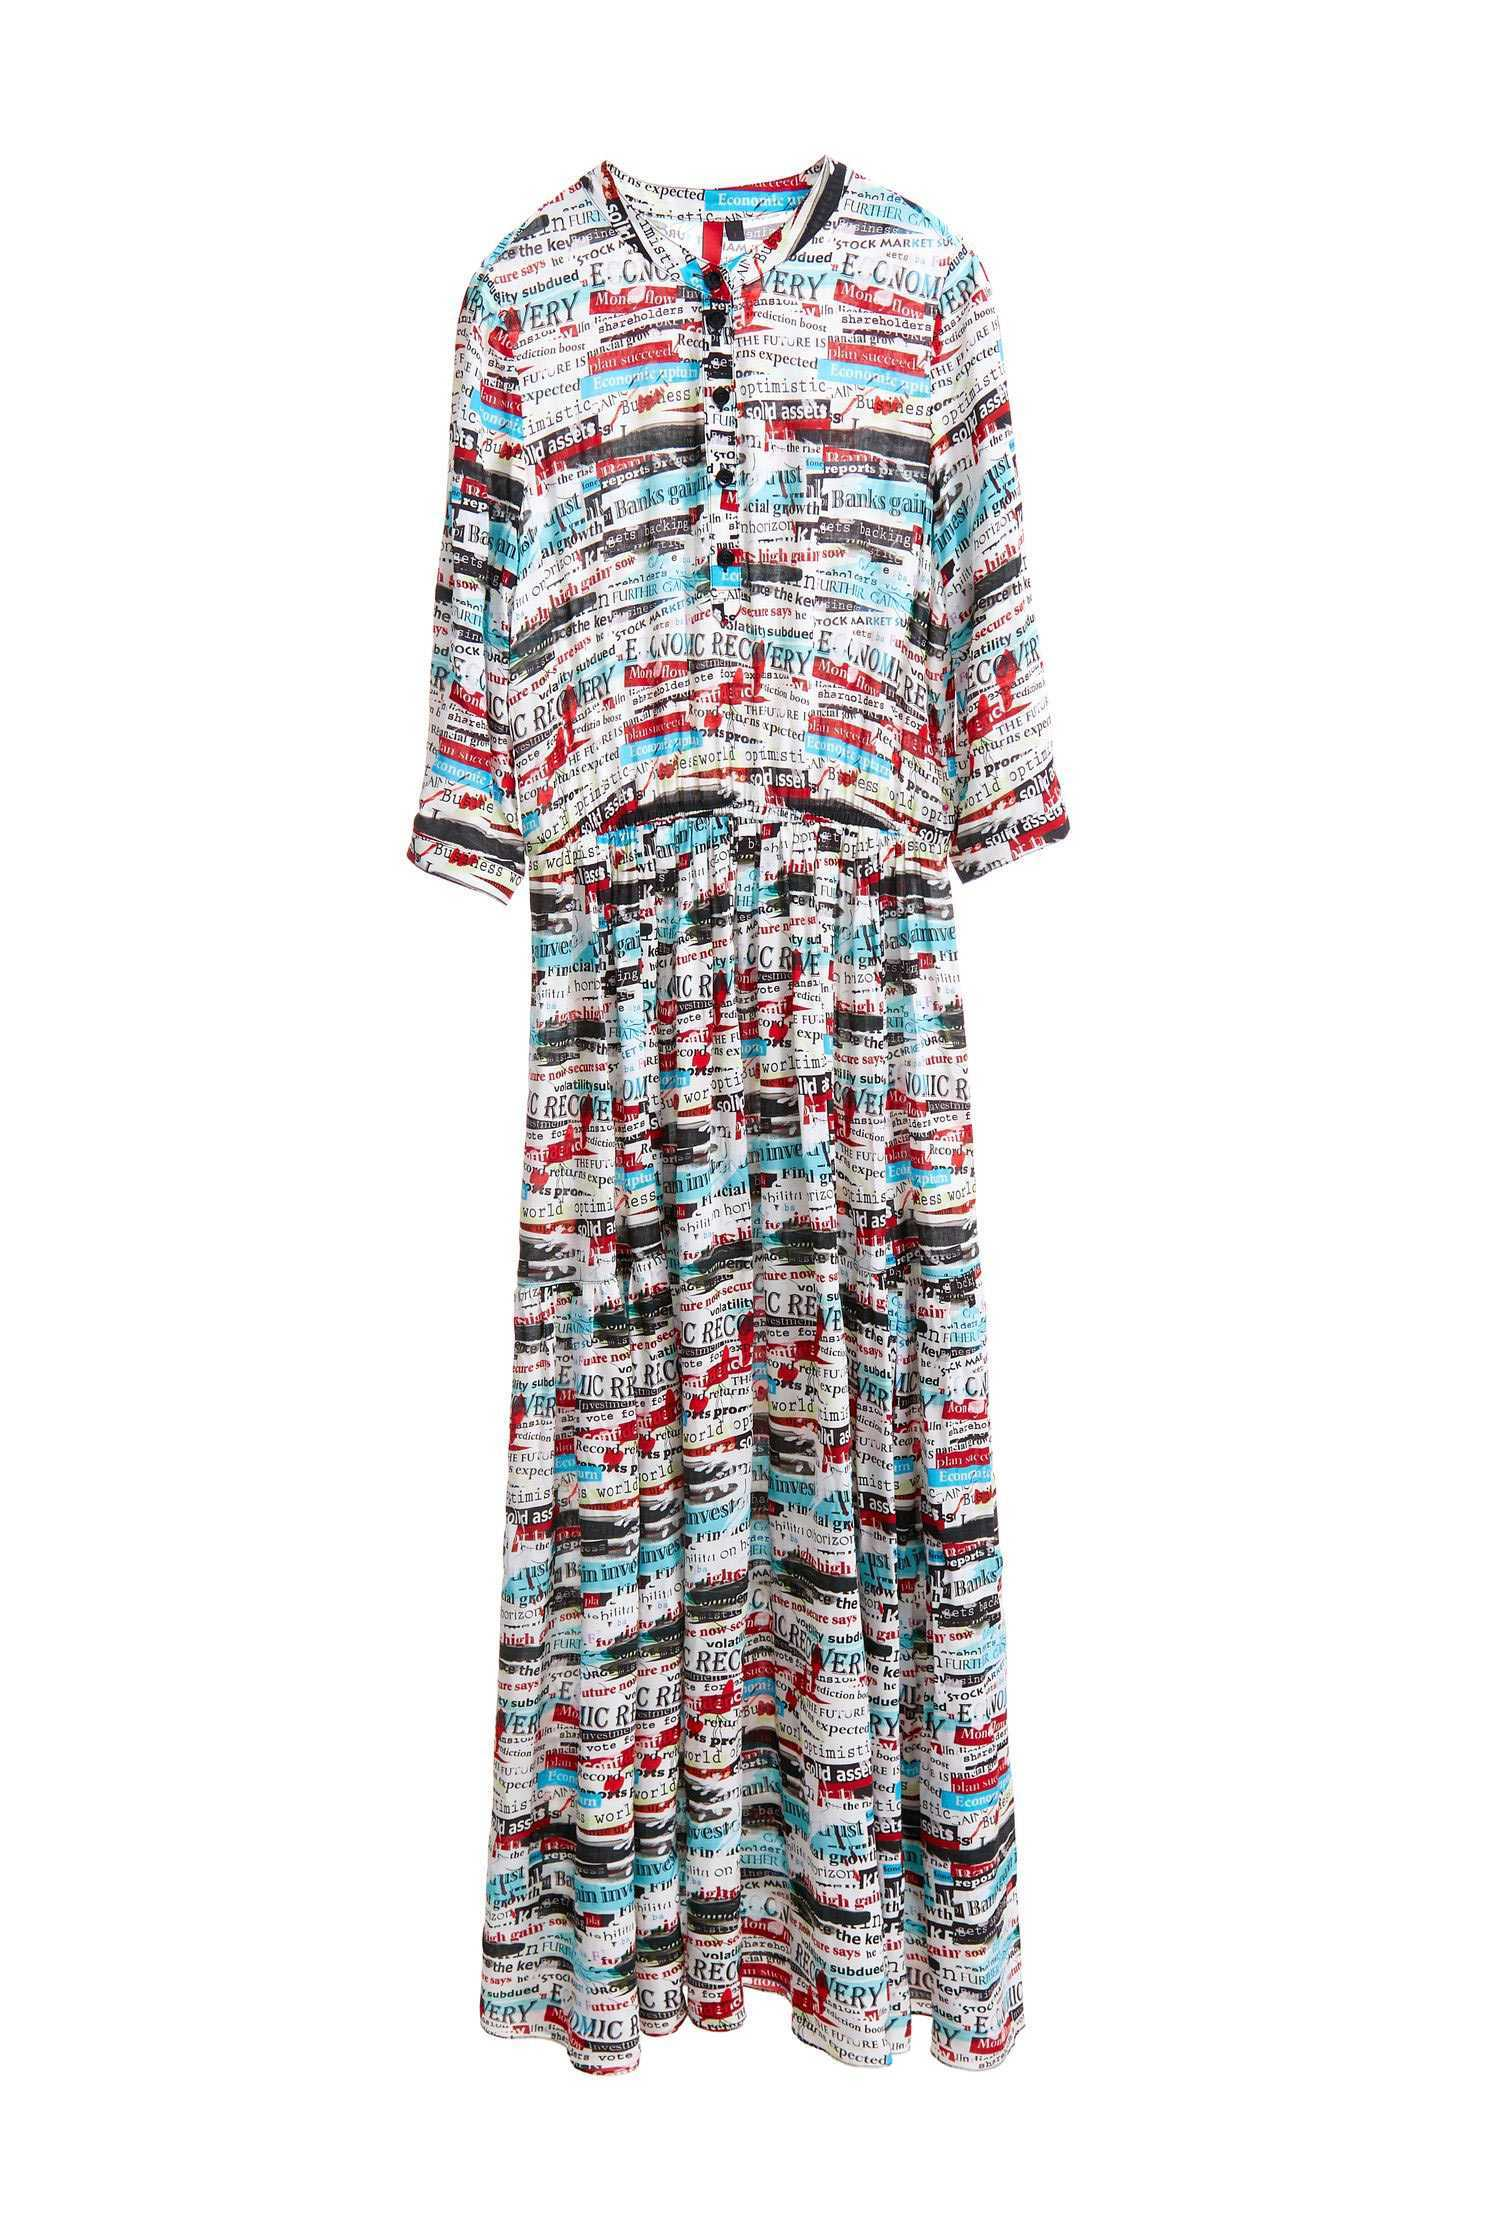 Painted exotic dress,dress,casualdress,printeddress,longdress,longsleevedress